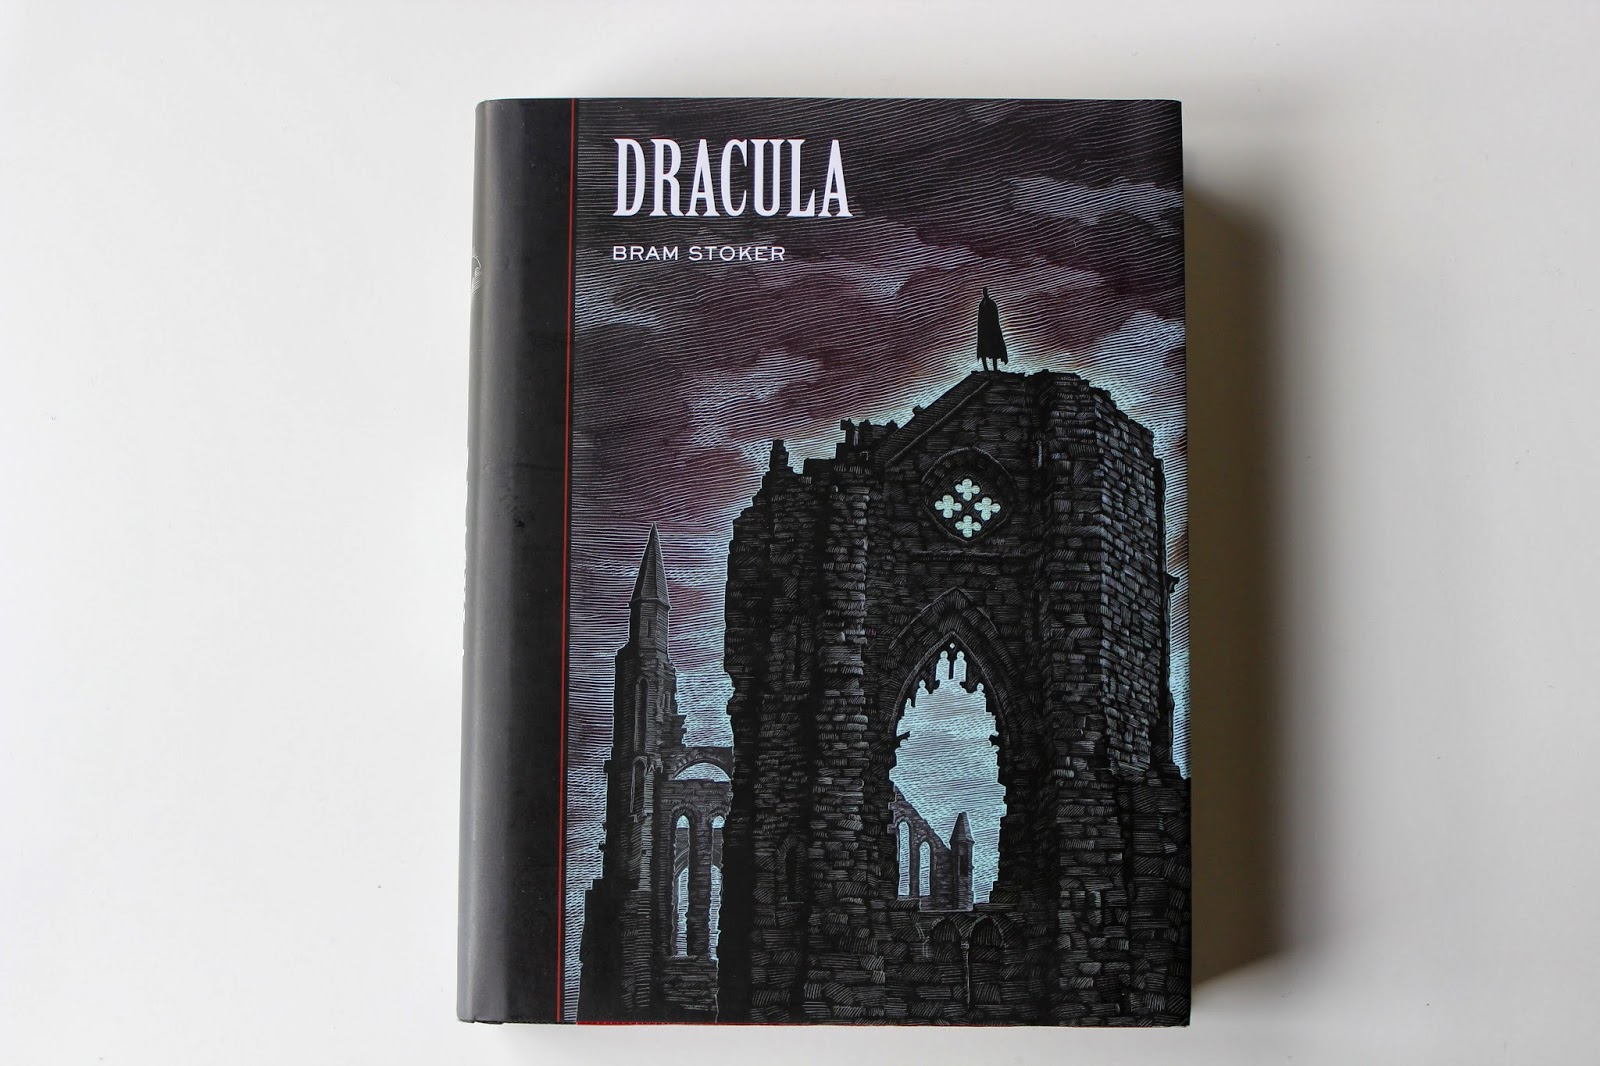 an analysis of good over evil in dracula by bram stoker For sheer notoriety, no victorian novel beats bram stoker's dracula every modern-day iteration of a vampire owes a debt to stoker's creation, giving it something of the proprietary eponymity of.